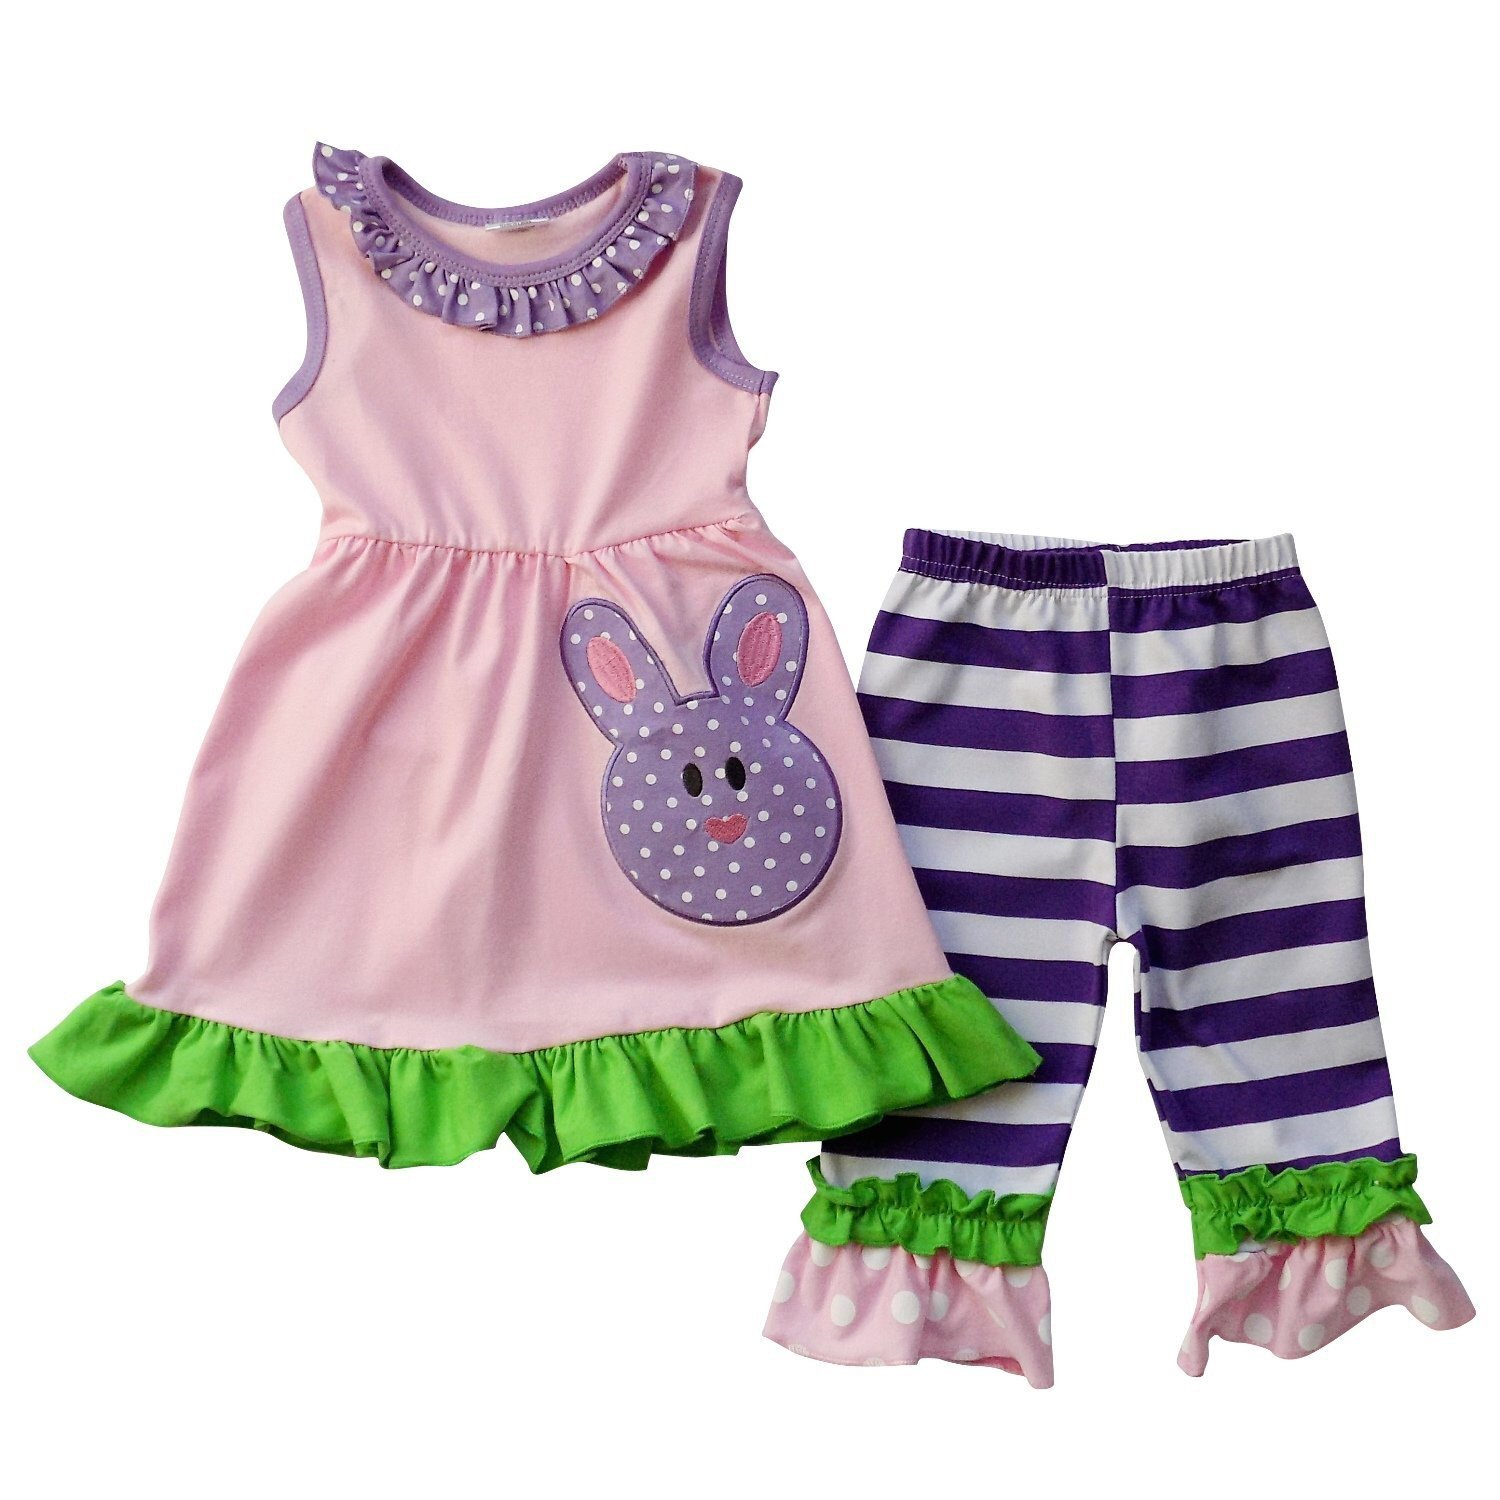 77bd635c1 Amazon.com: Girl's Easter Bunny Toddler Baby Outfit Clothing Set Children's  Boutique Clothing: Clothing